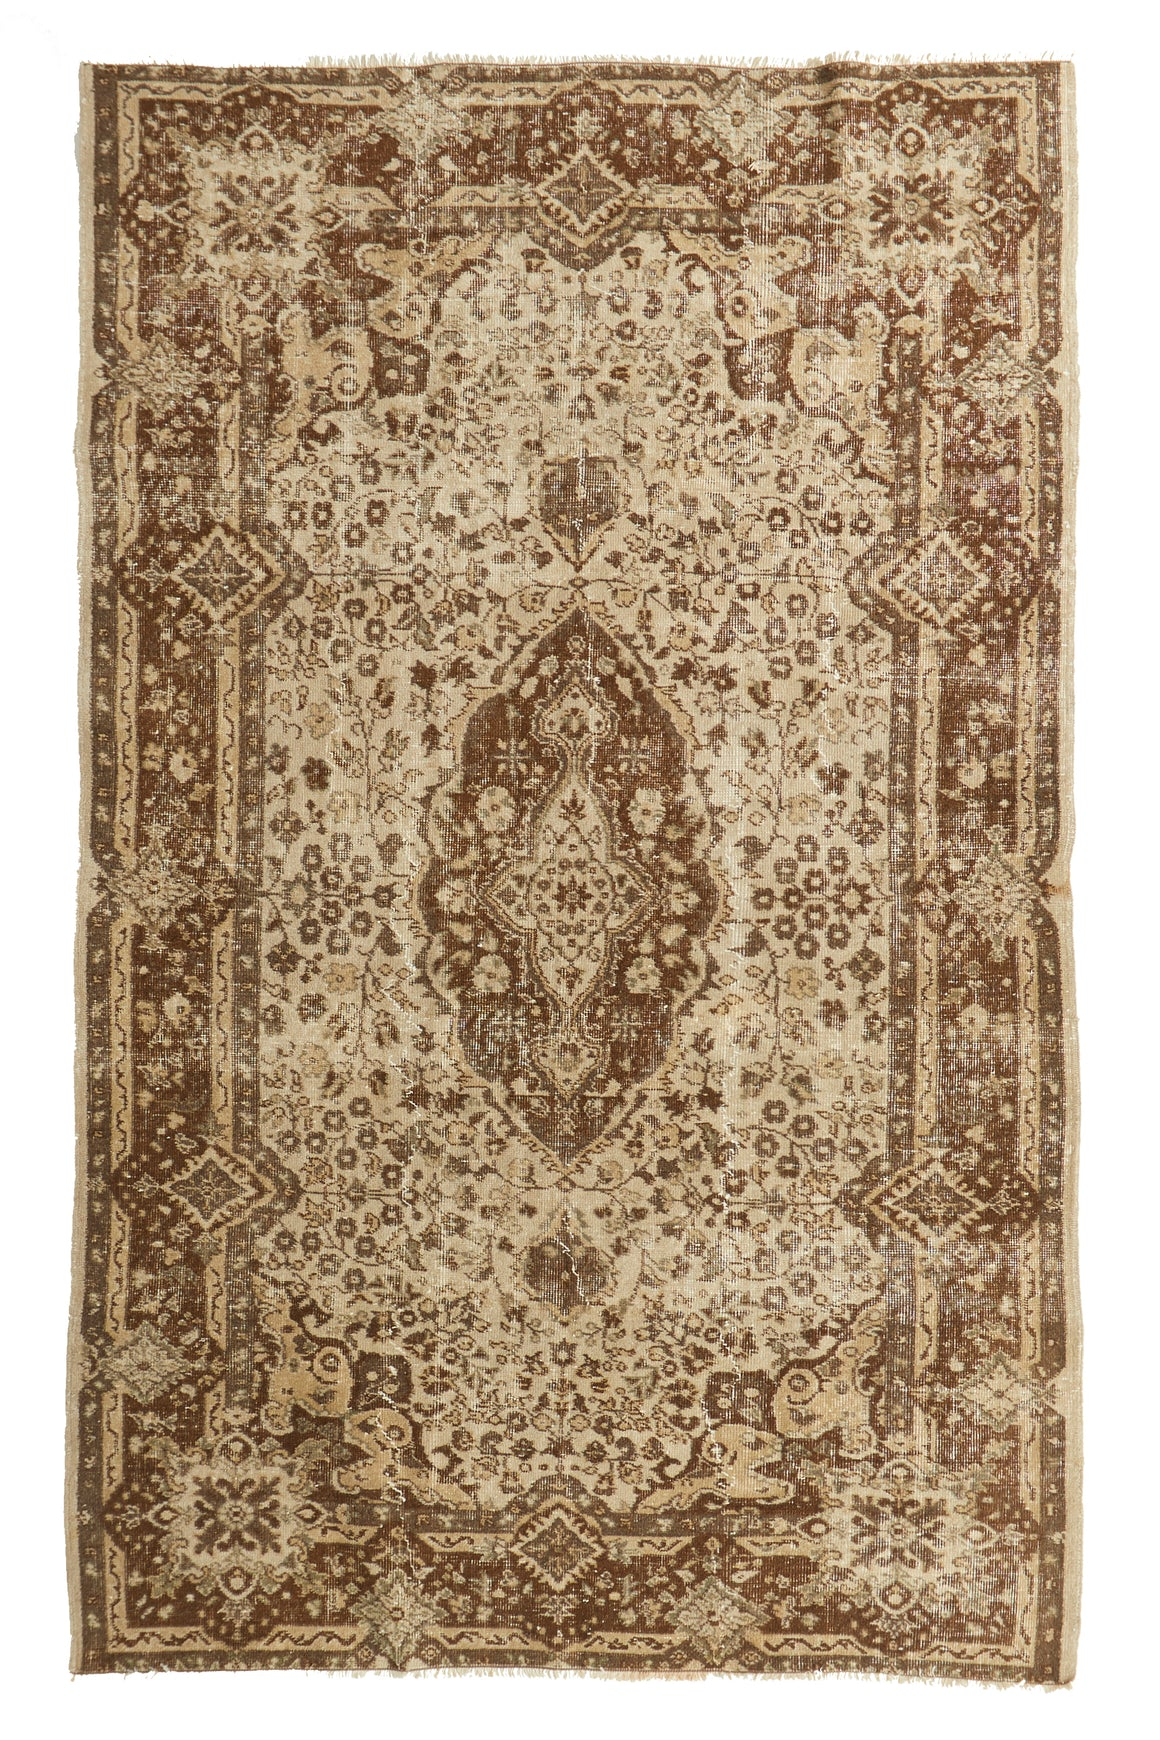 "'Taurus' Vintage Turkish Area Rug - 5'6"" x 8'10"" - Canary Lane - Curated Textiles"